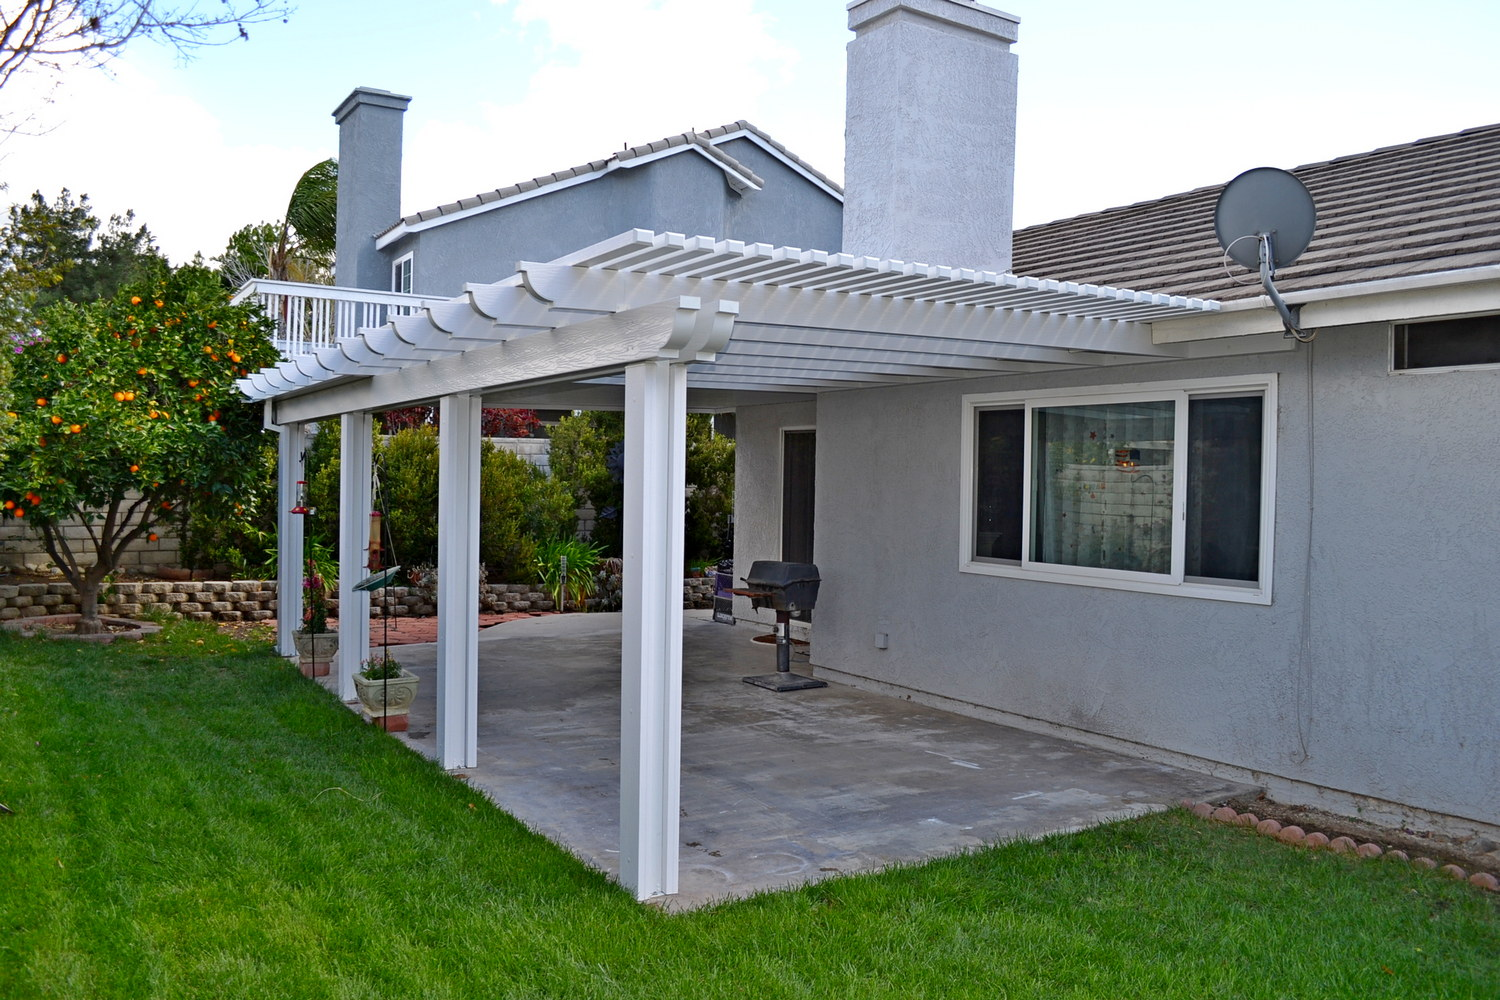 Project: Patio Cover in Redlands